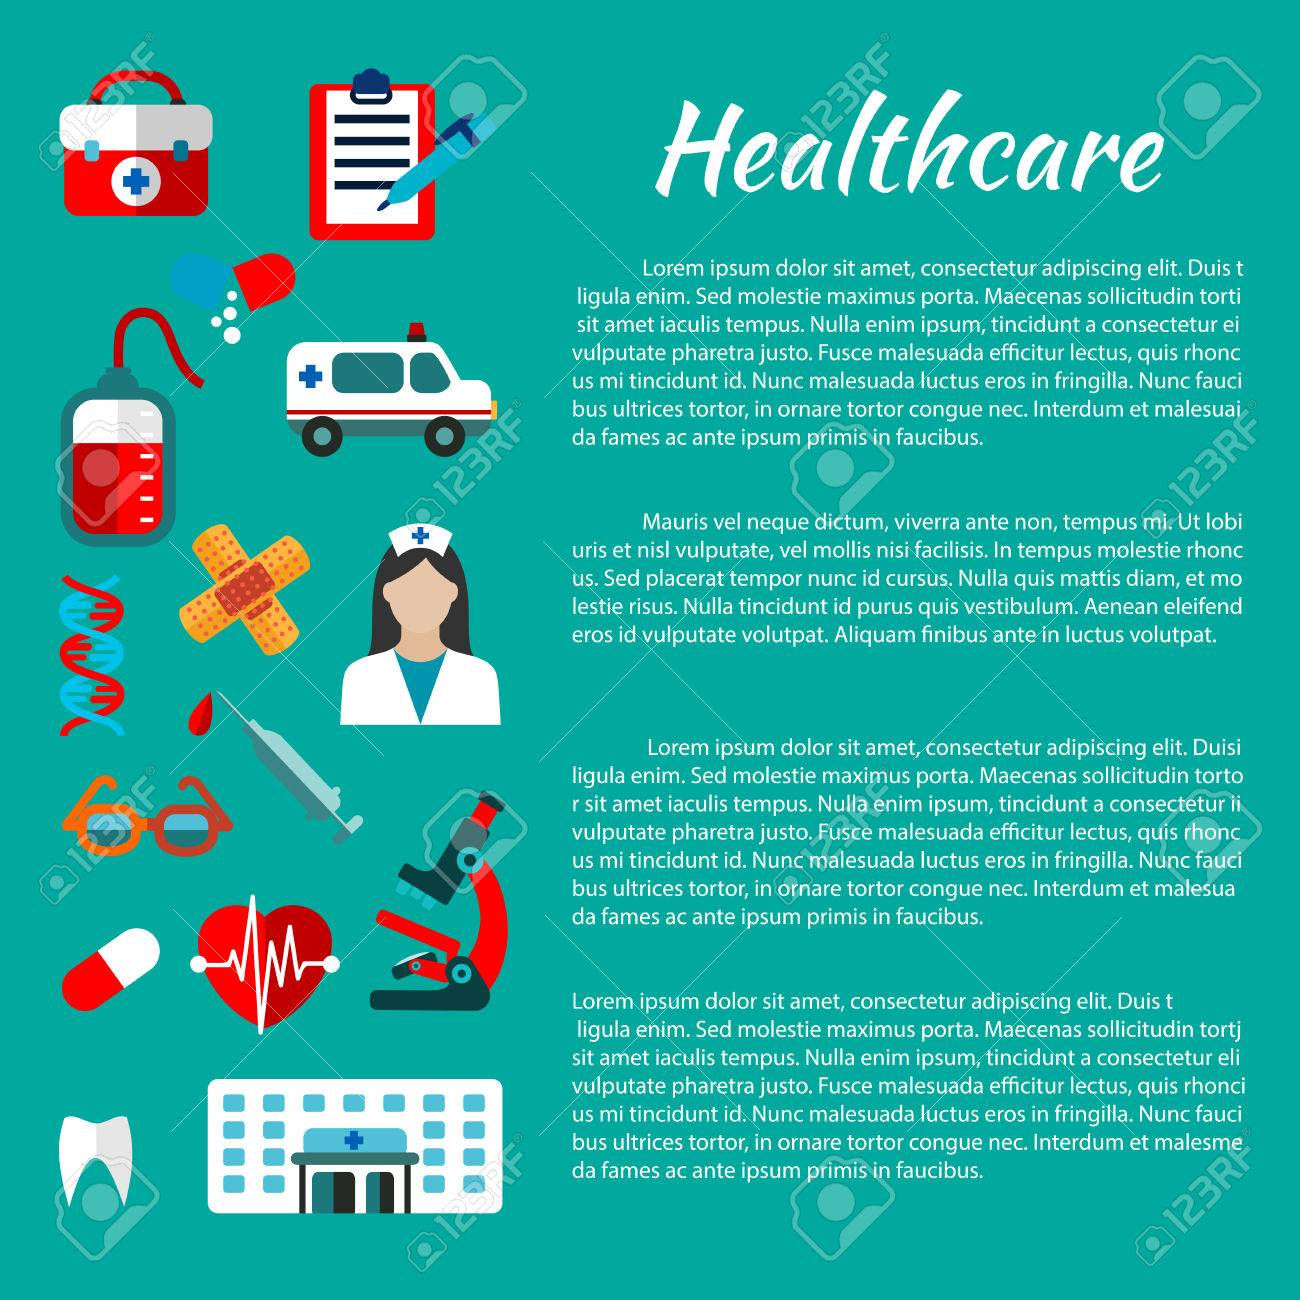 healthcare and hospital poster design template with flat icons